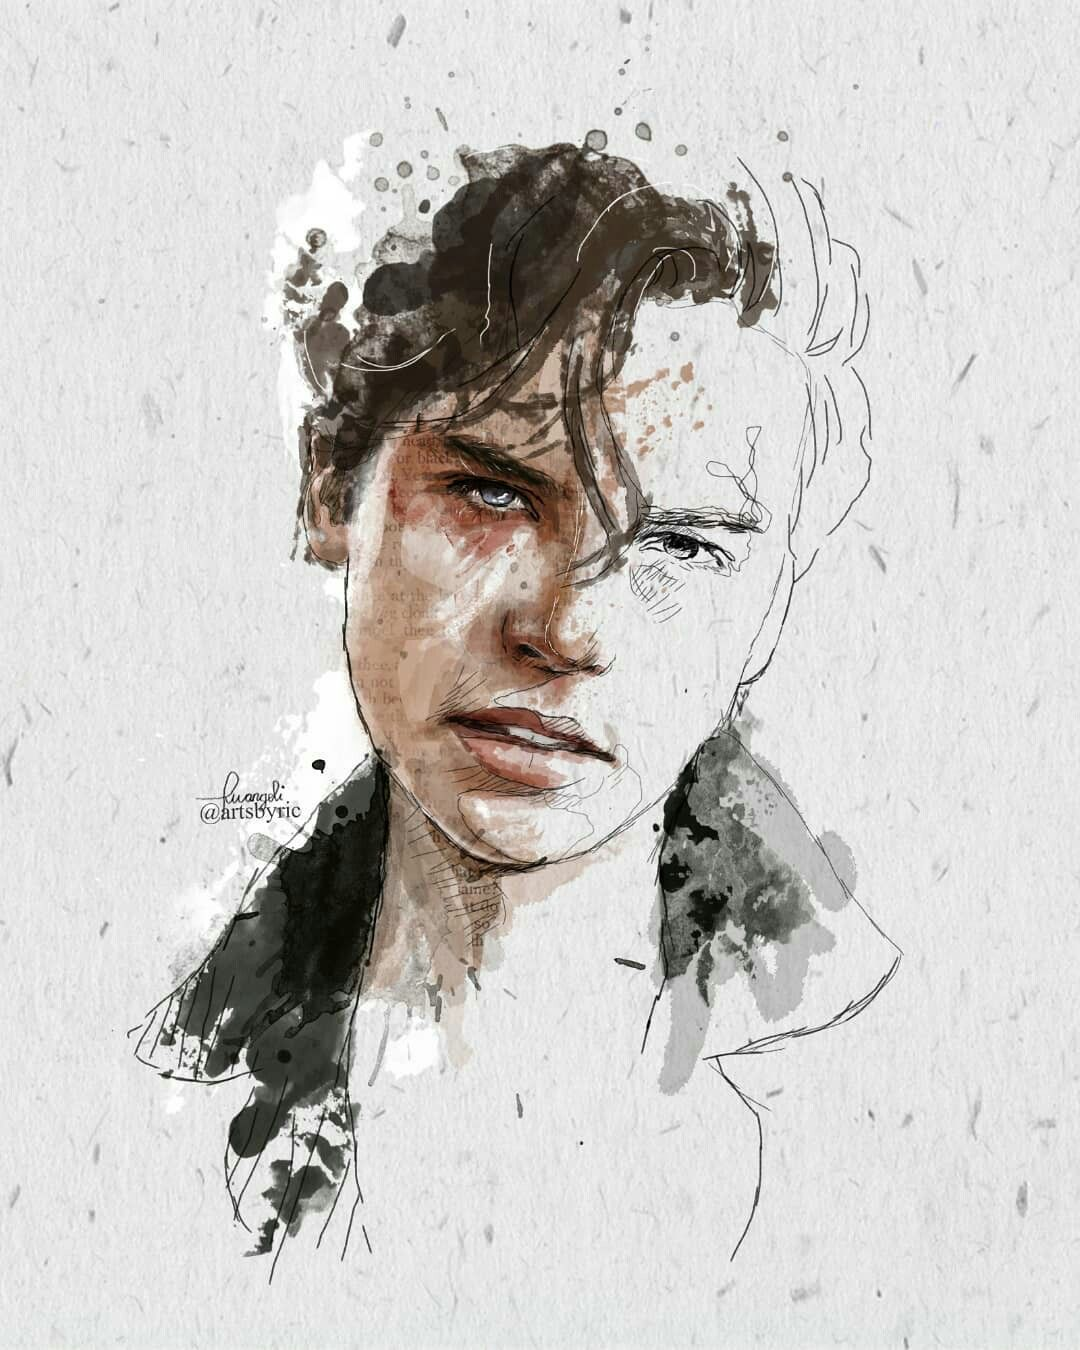 This Is Fricking Awesome Art Who Ever Did This Deserves An Applause Disegni Di Celebrita Disegno Ritratti Sfondi